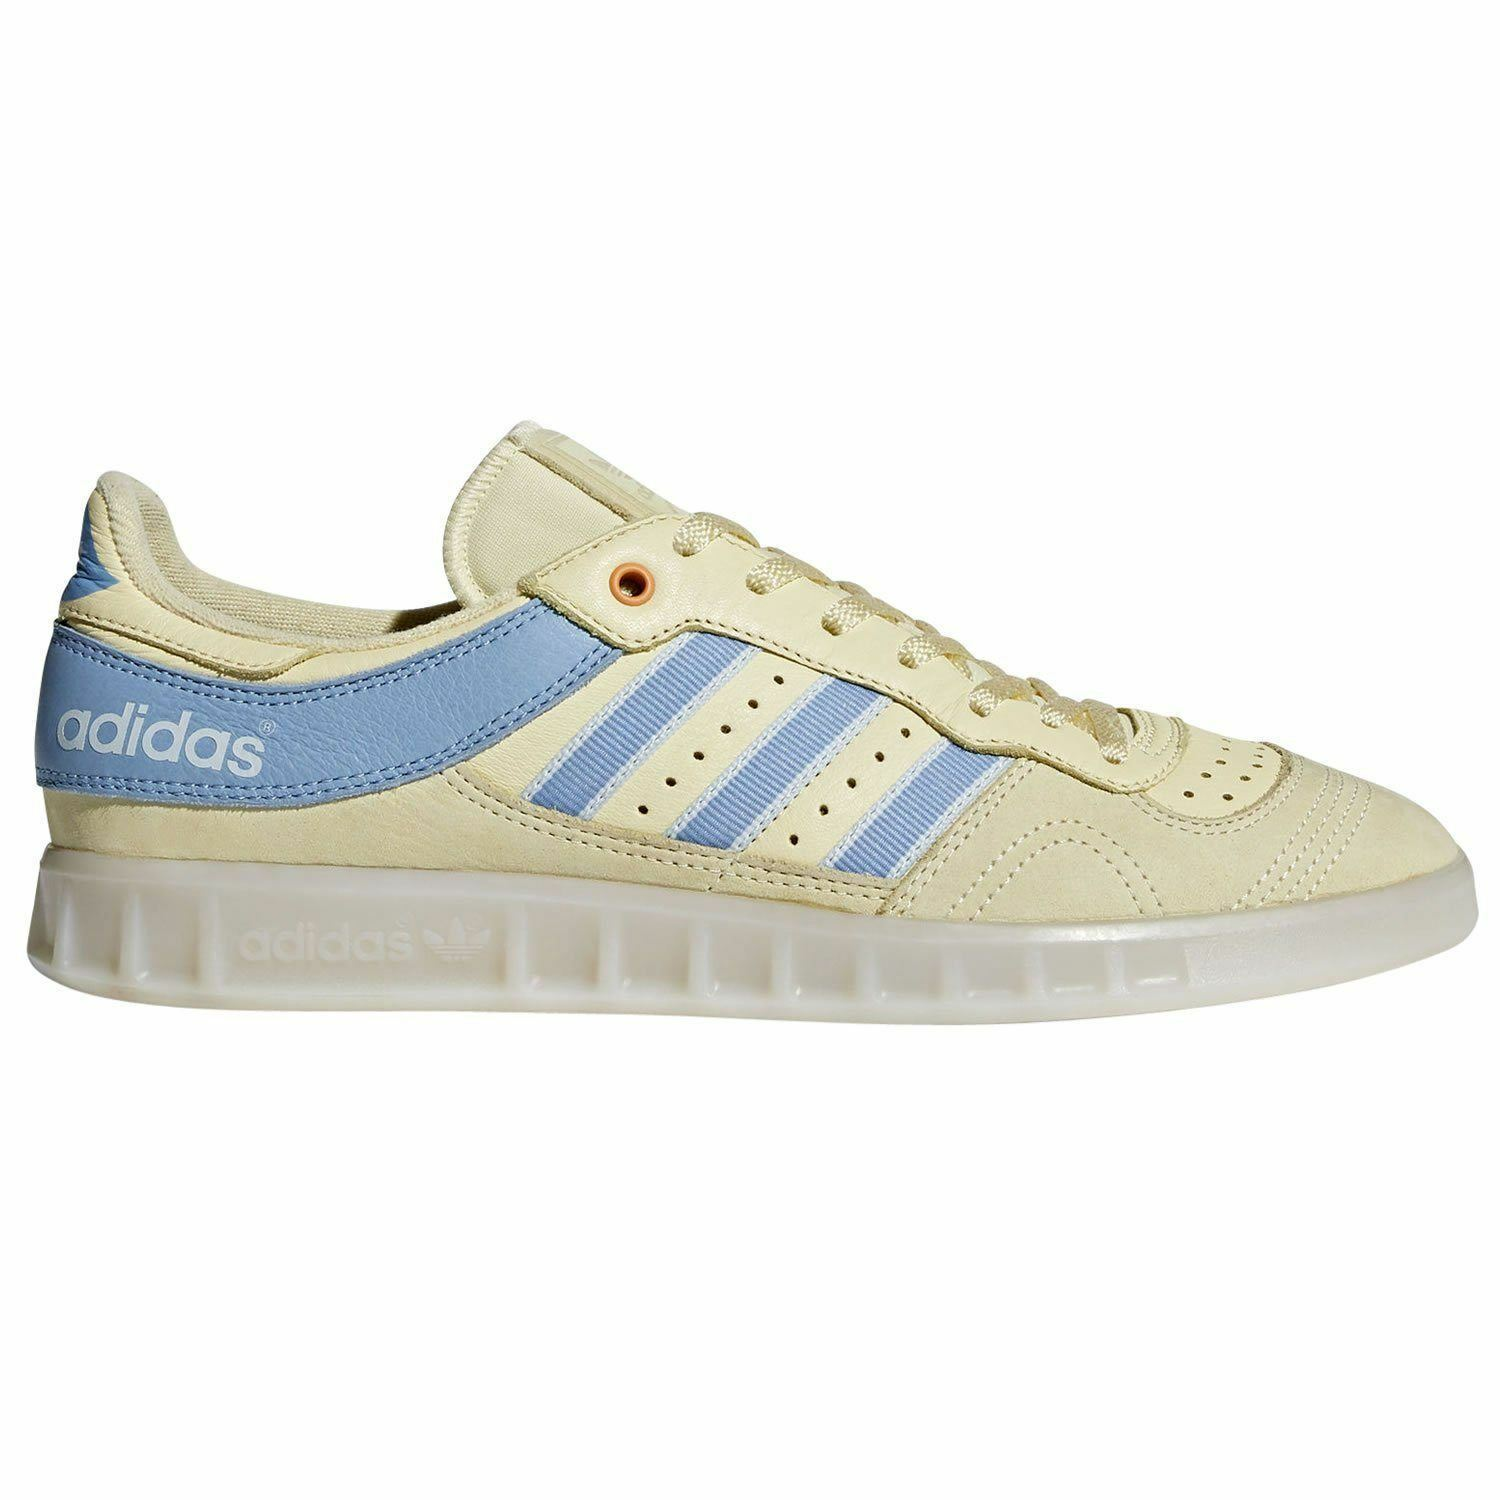 Adidas Originals HOMBRE Handball Top Oyster Amarillo Zapatillas Zapatillas Raro